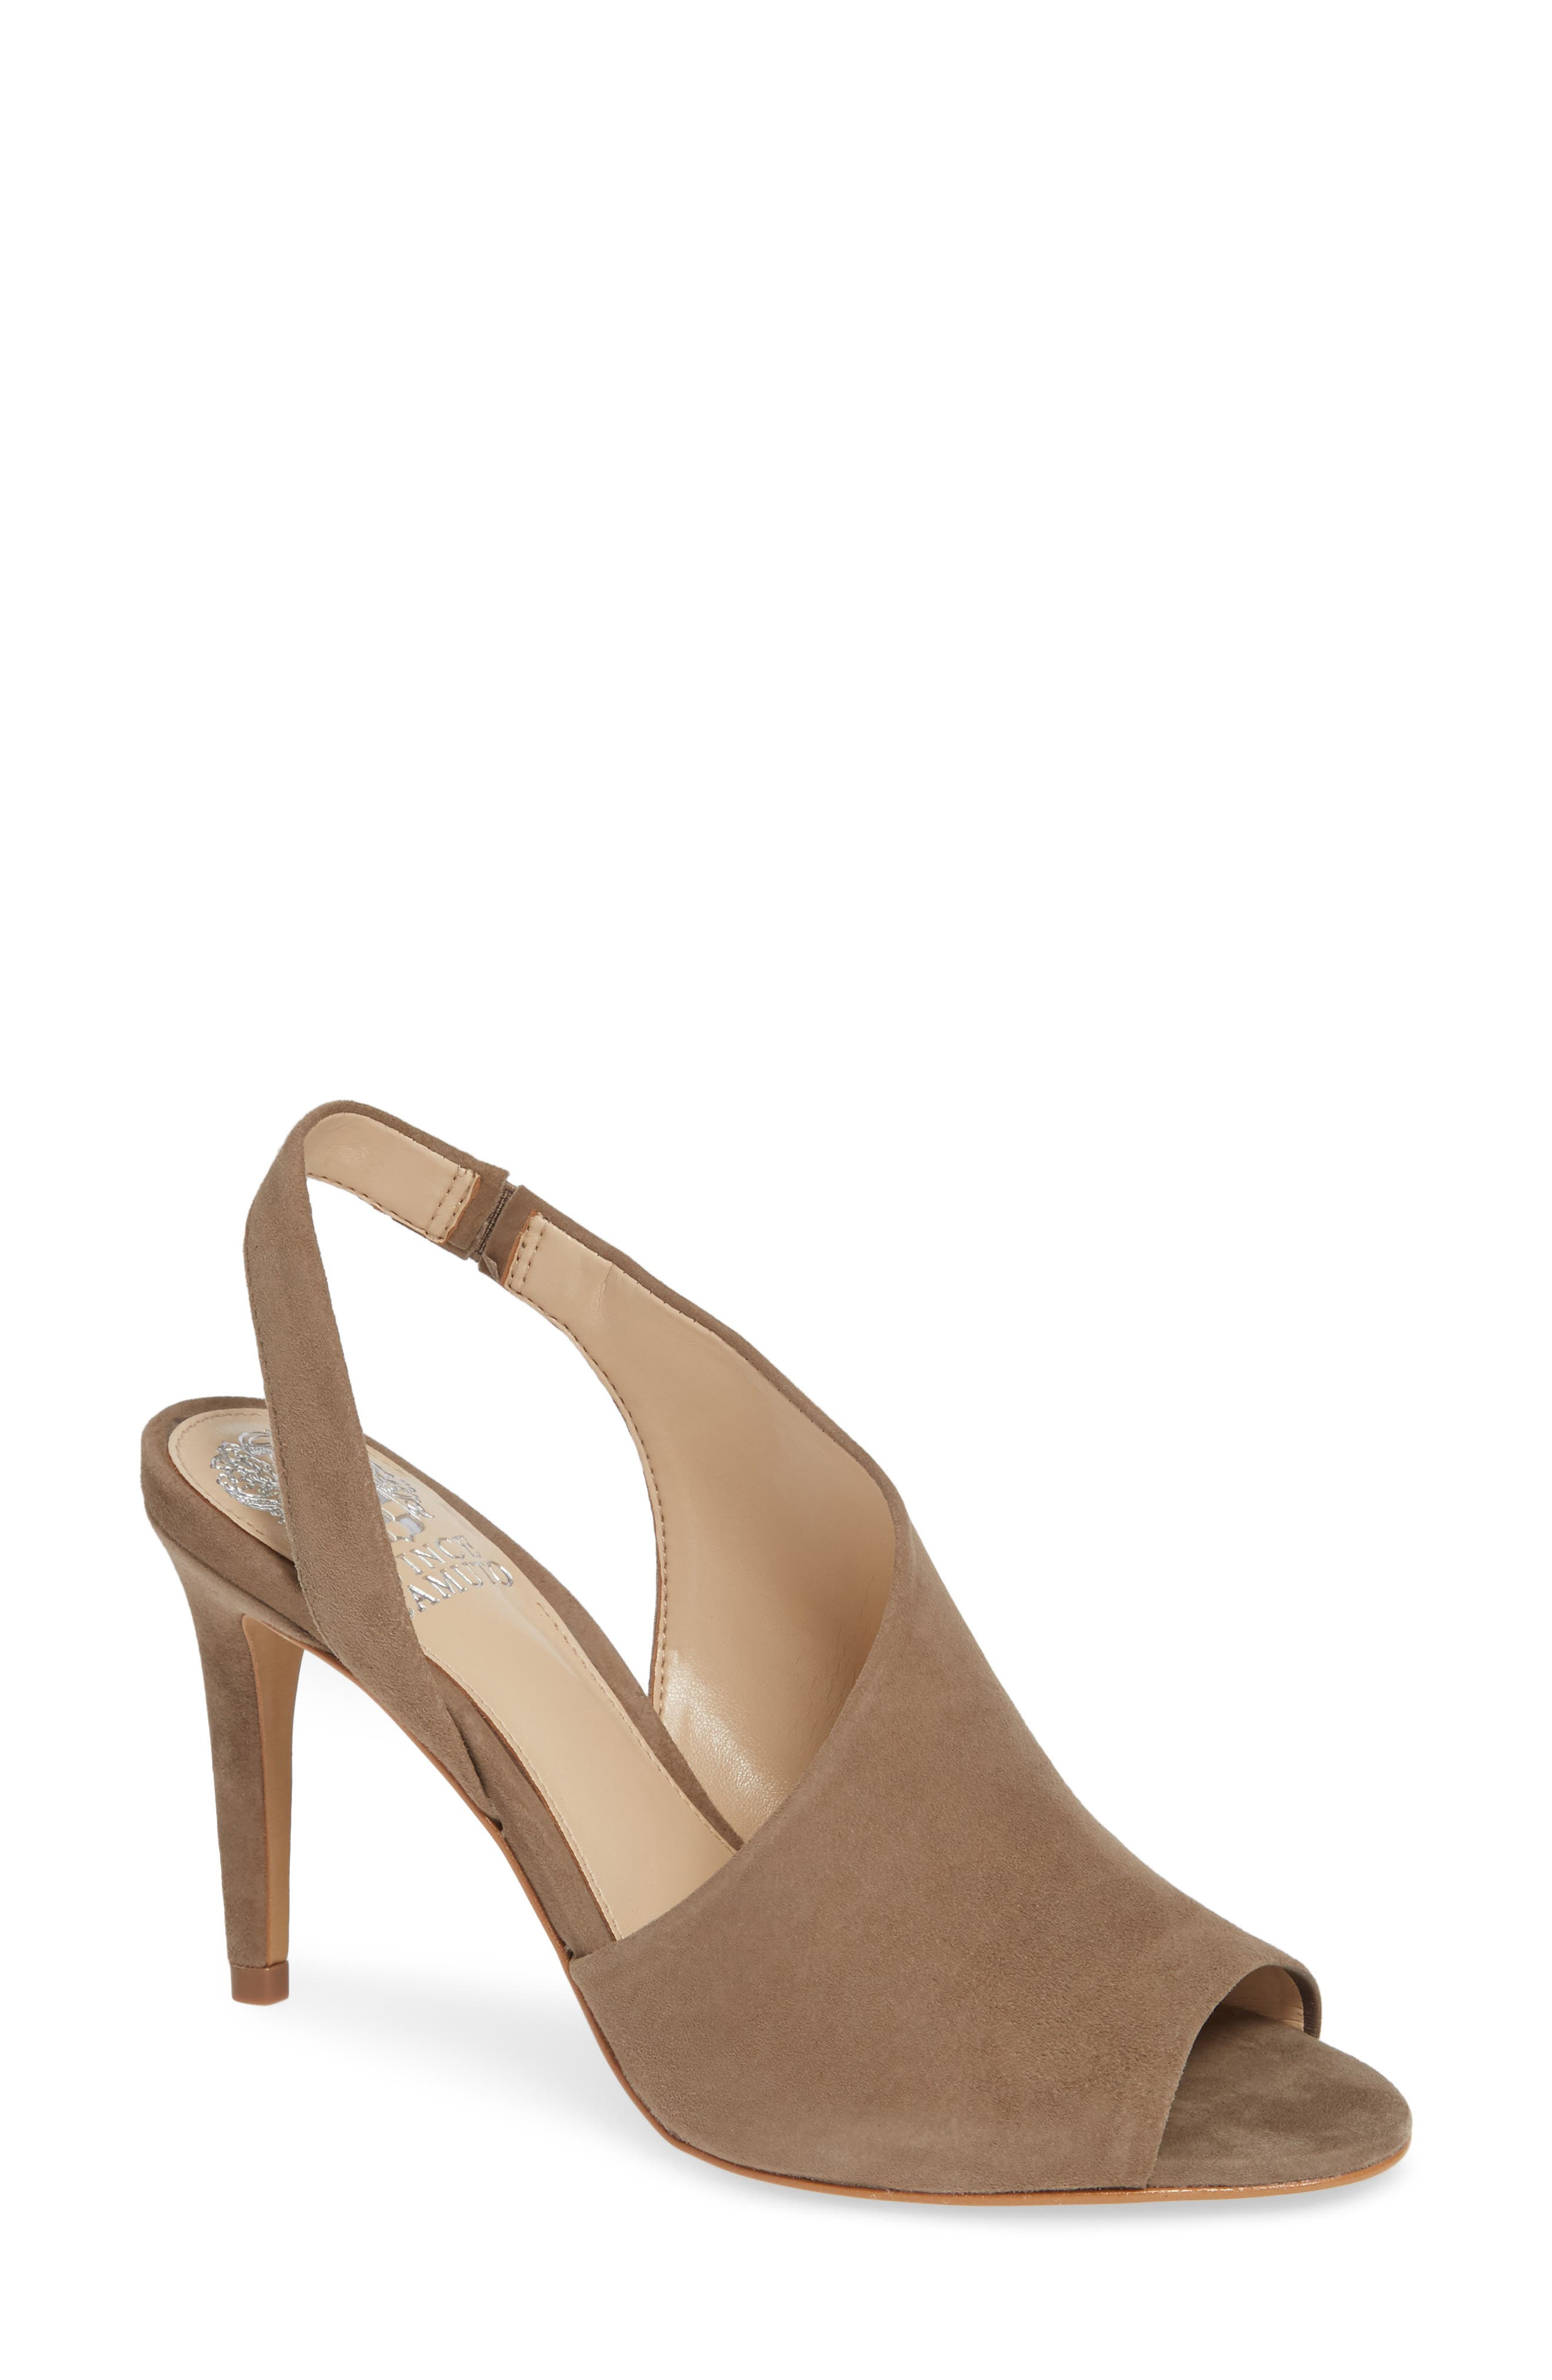 Vince Camuto Crasantha Sandal- Brown